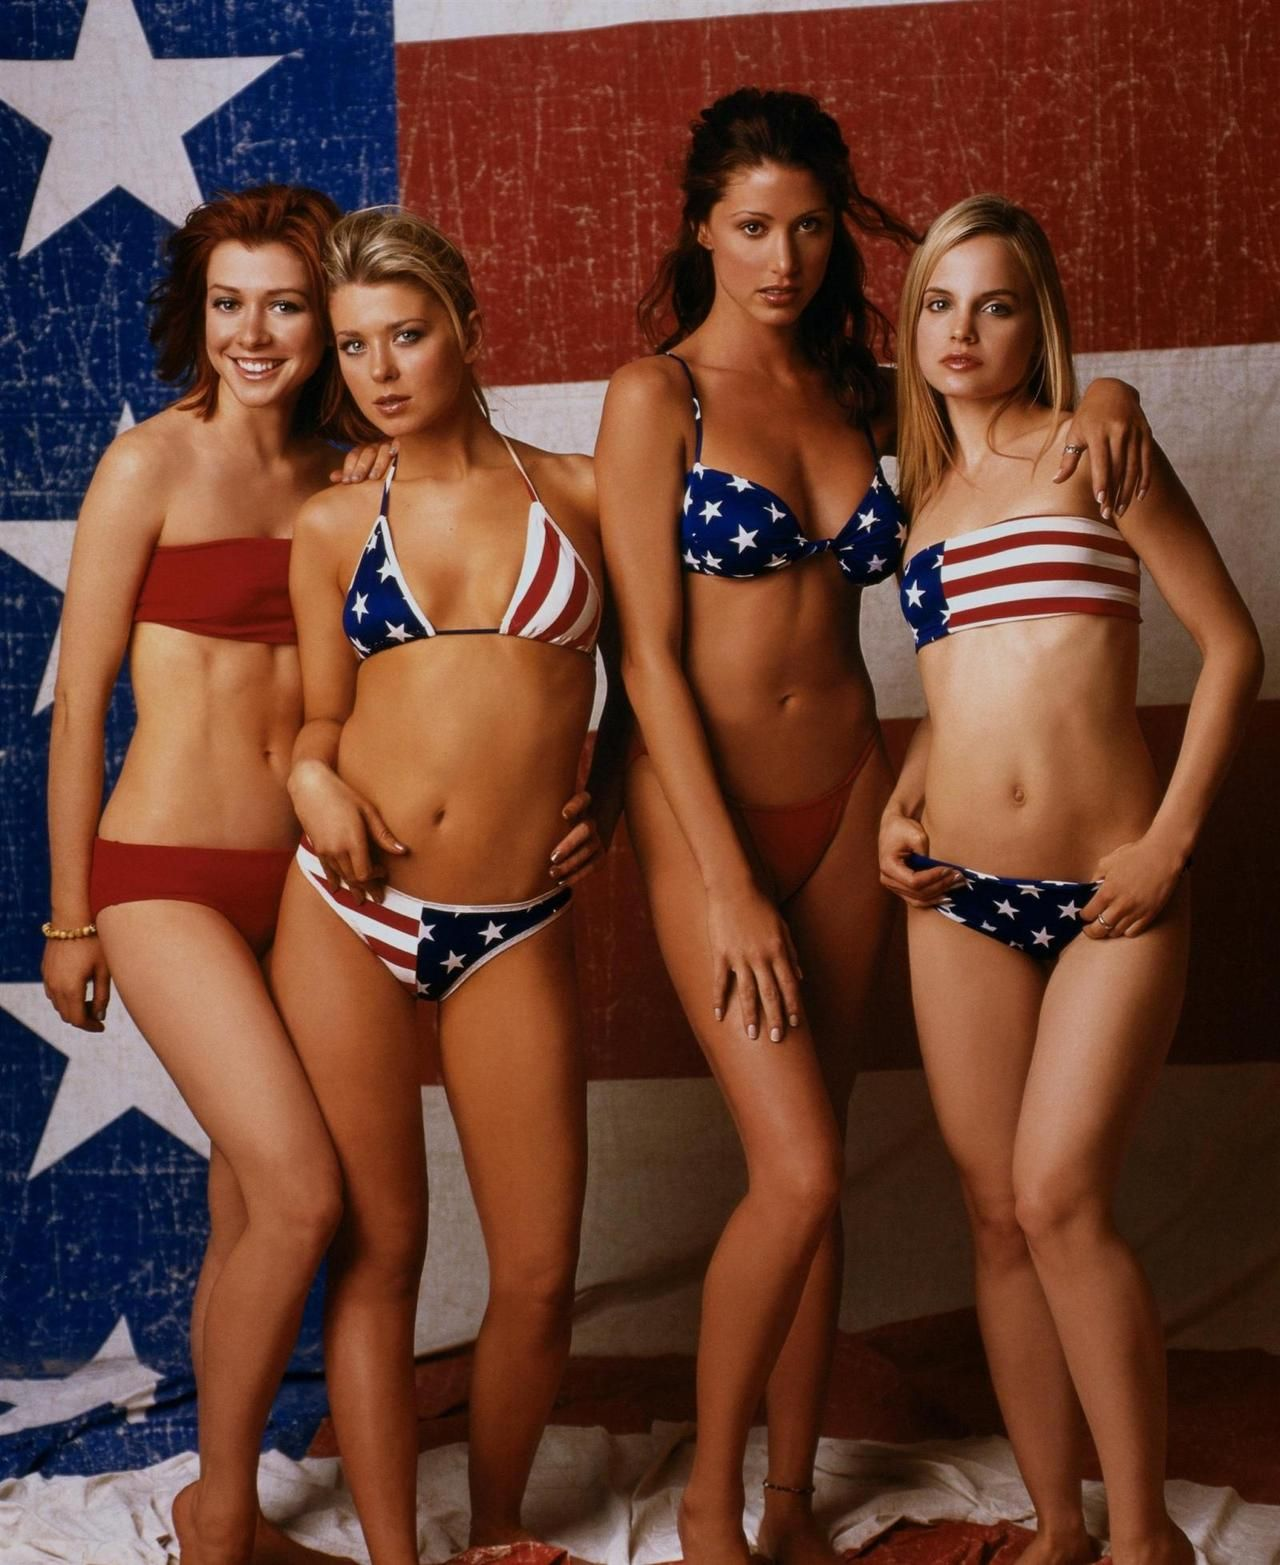 American Pie Uncensored Video michelle, vicky, nadia & heather - alyson hannigan, tara